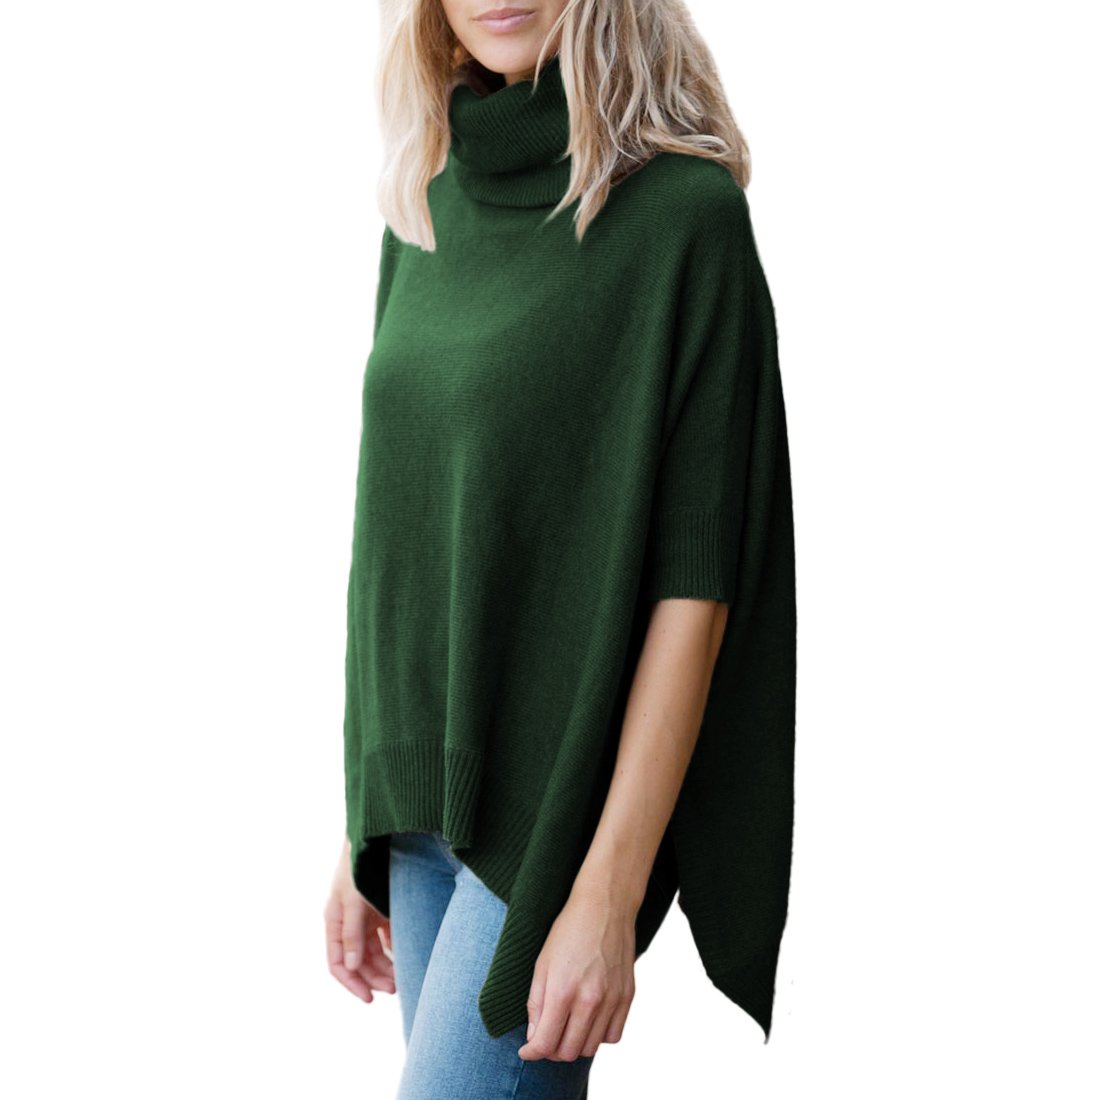 Parisbonbon Women's 100% Cashmere Pullover style Poncho Color Hunter Green Size L by Parisbonbon